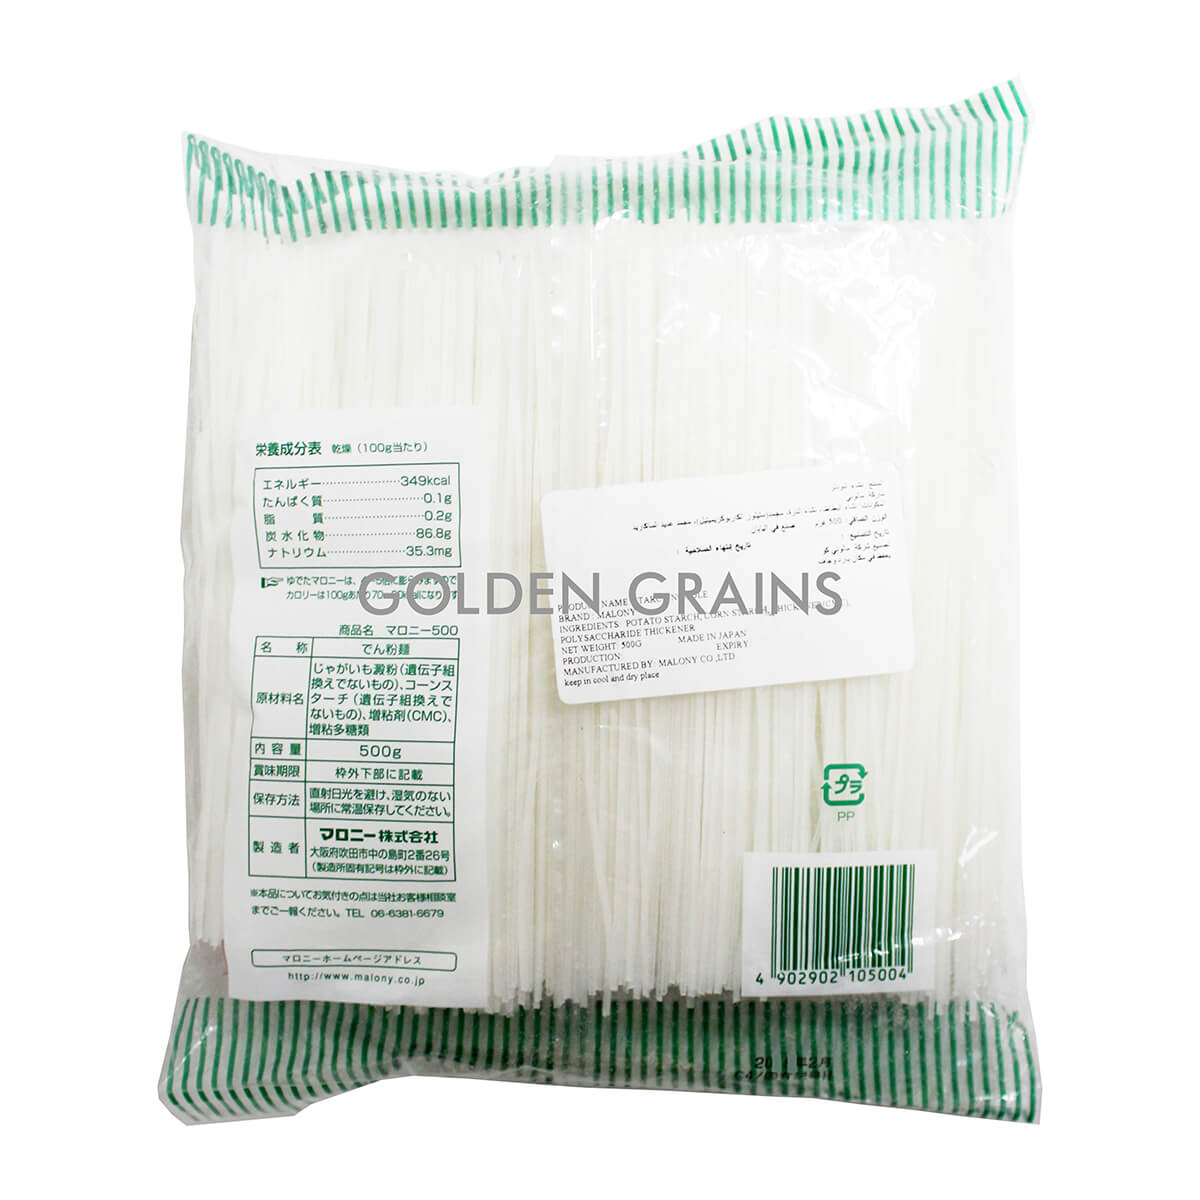 Golden Grains Malony - Starch Noodle - Back.jpg